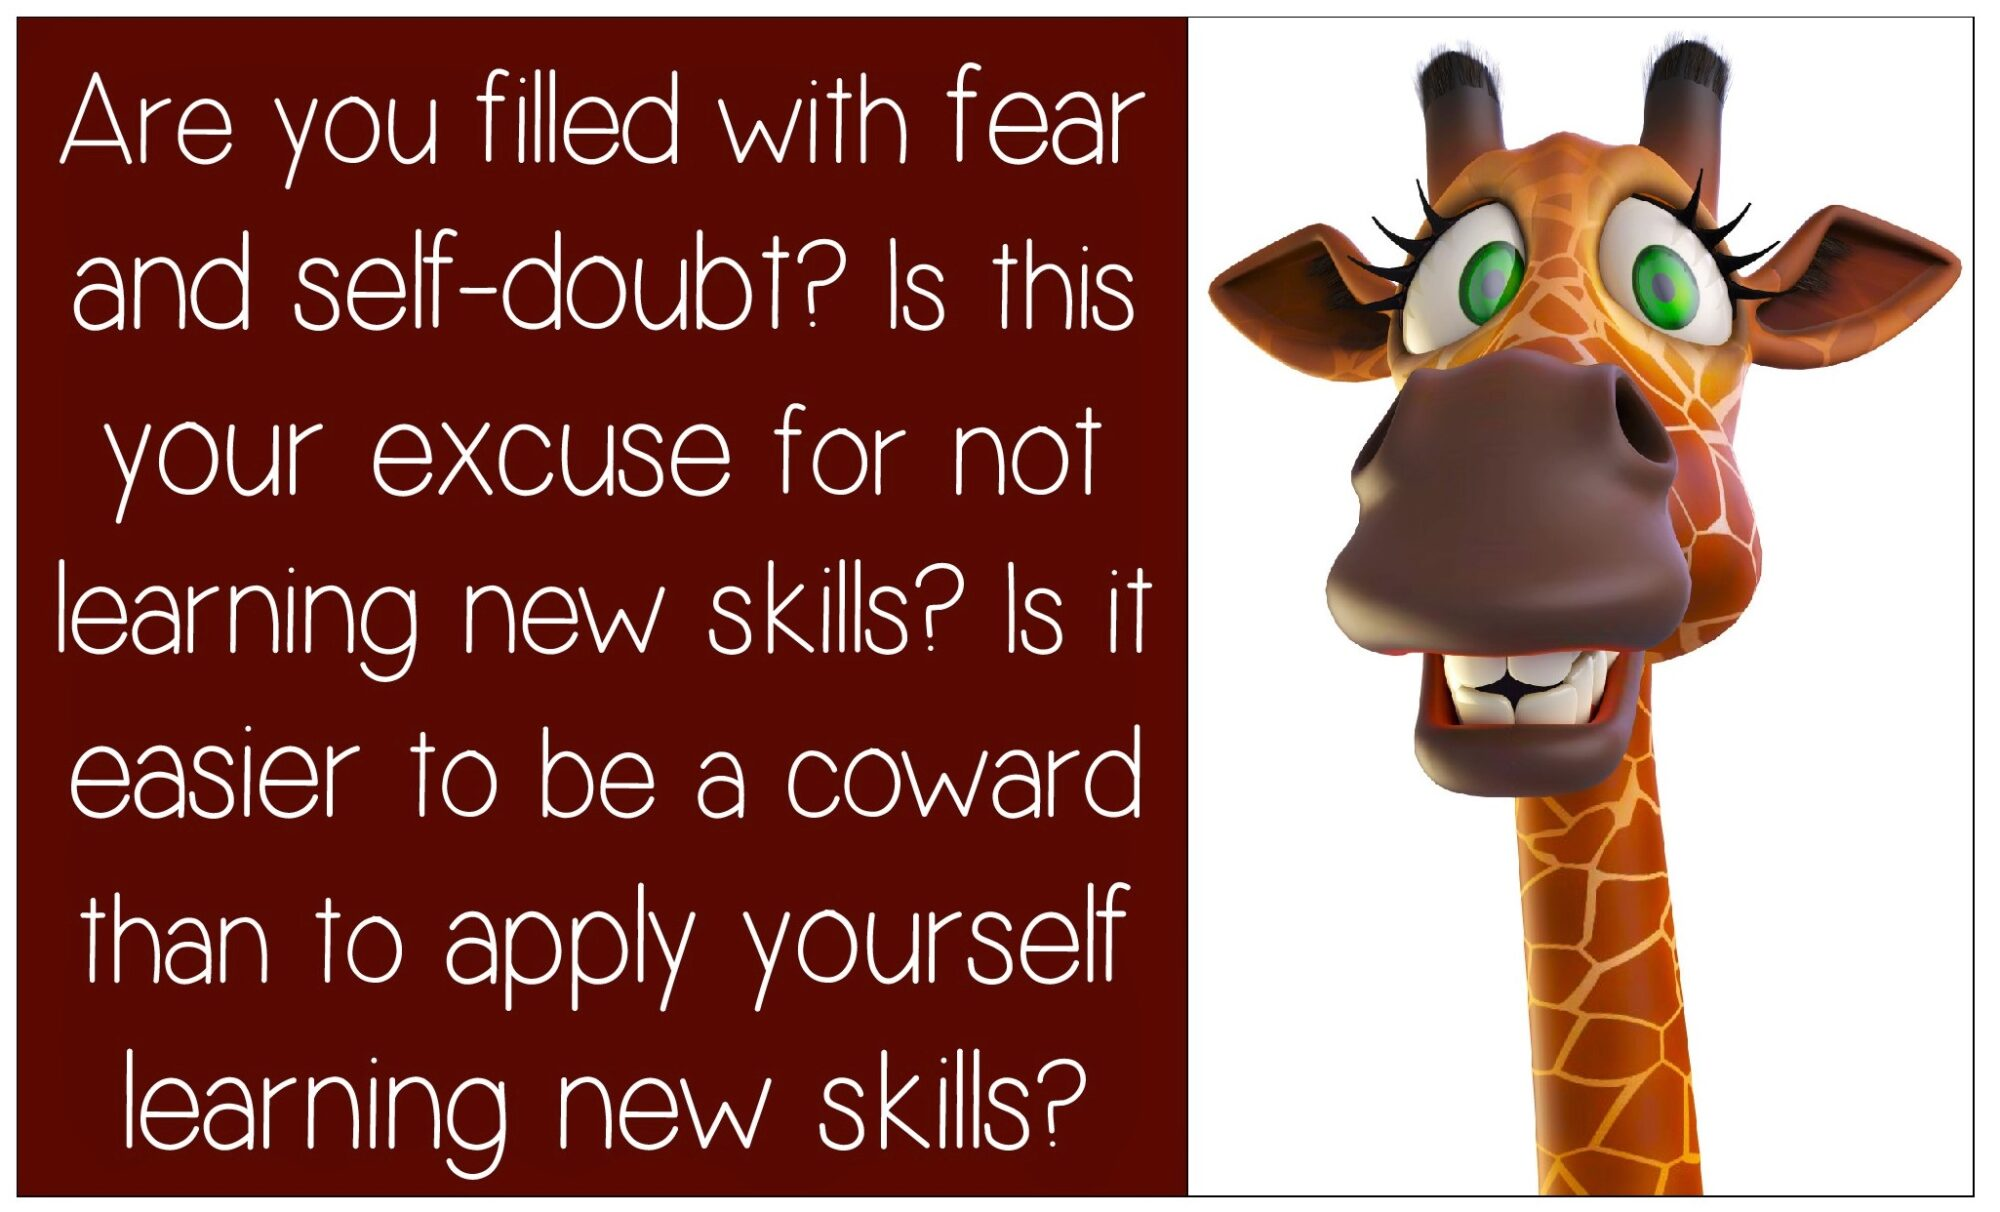 Are You Filled with Fear and Self-doubt